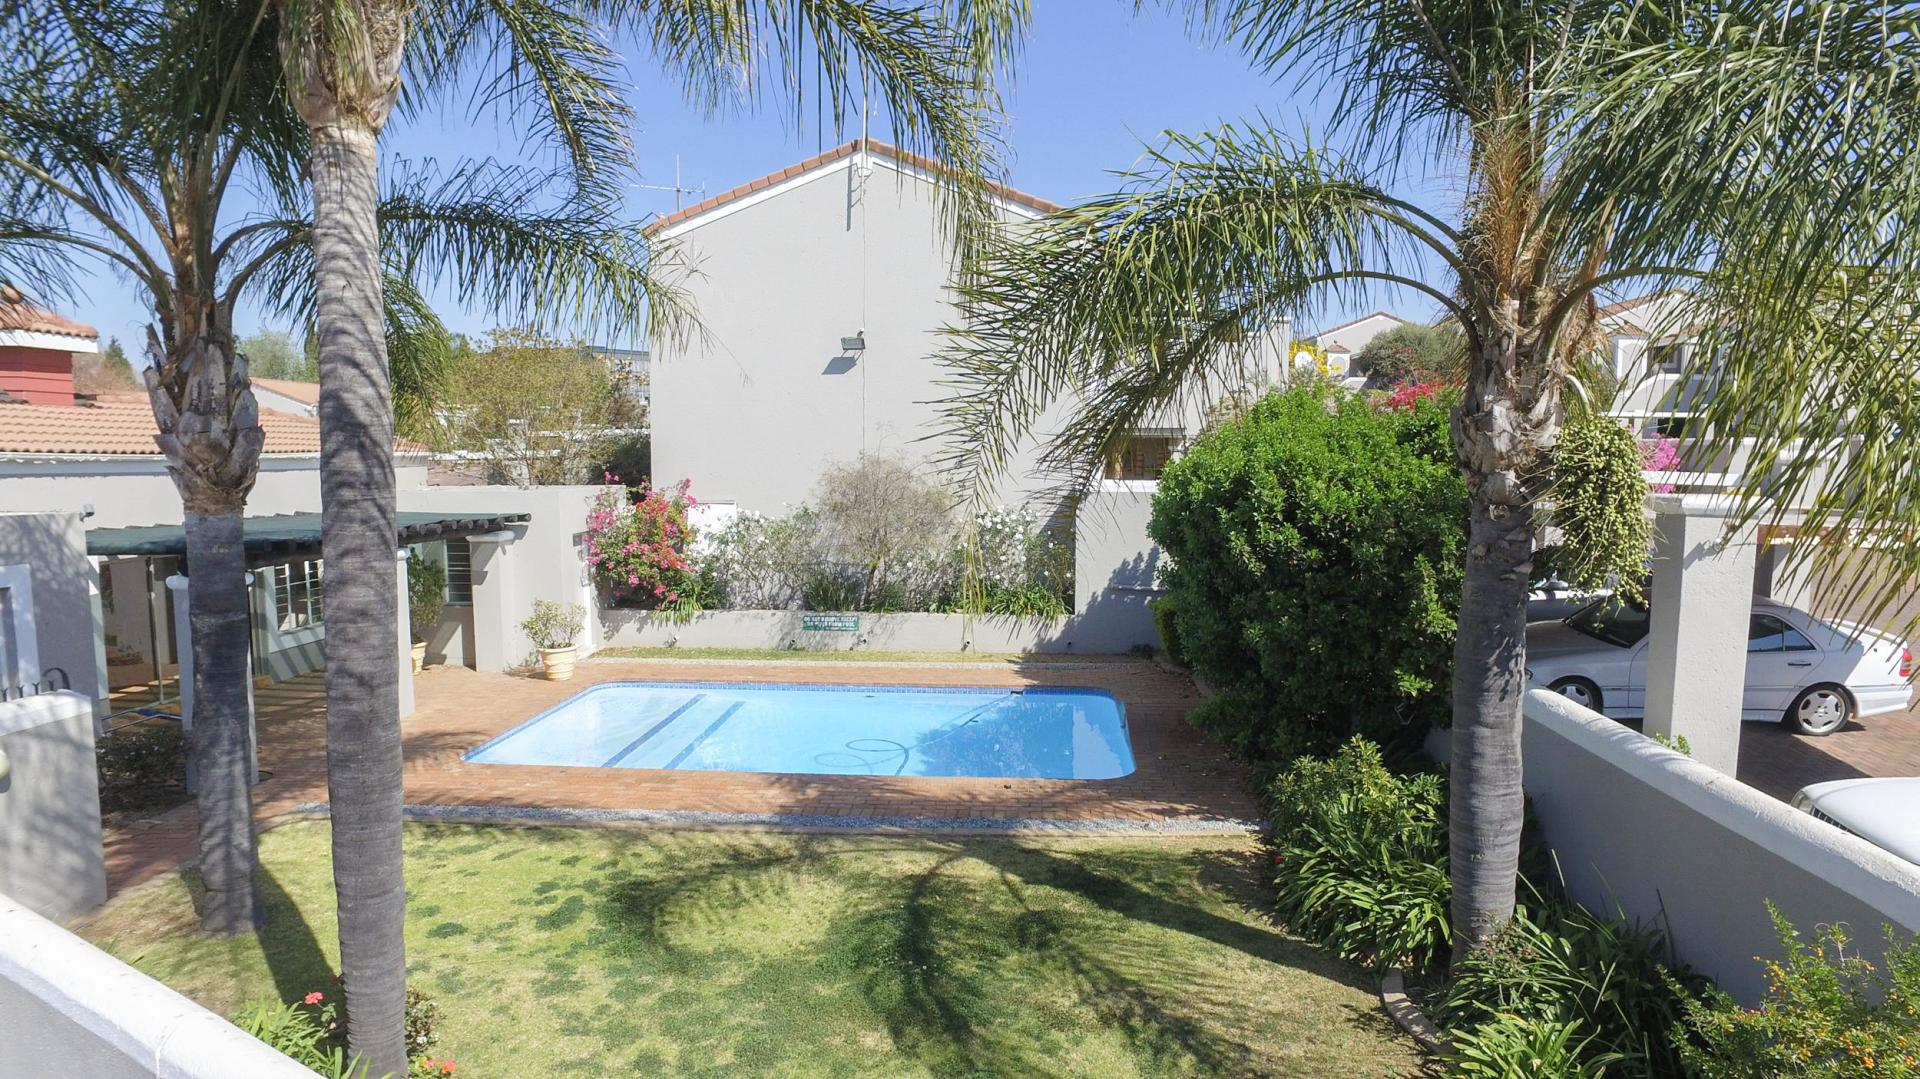 2 bedroom apartment for sale in randburg - Available two bedroom apartments ...